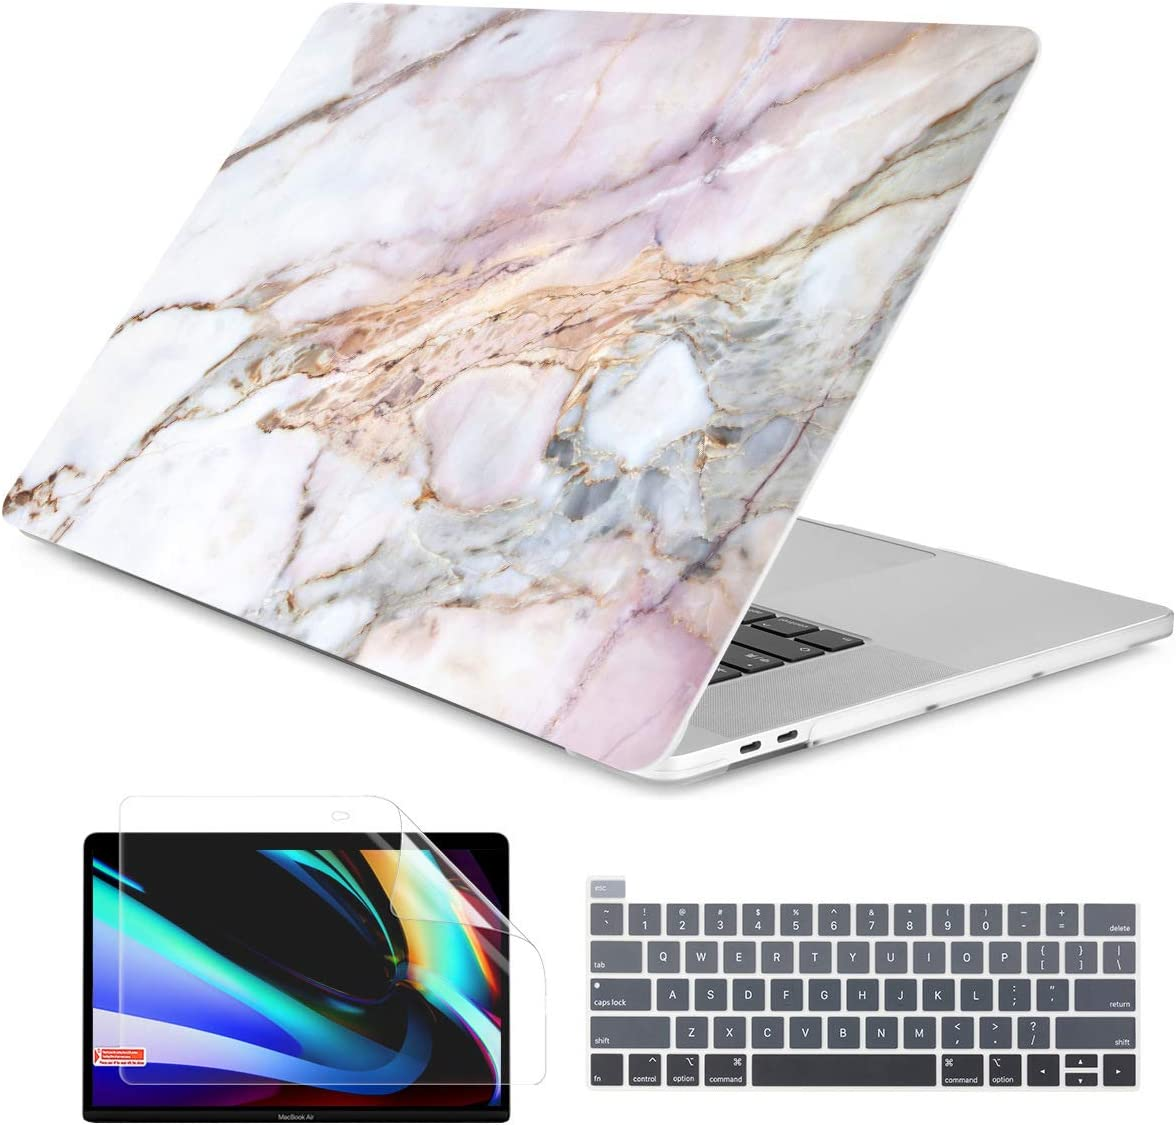 Dongke MacBook Pro 13 inch Case Model A2251/A2289 2020 Released, Plastic Hard Shell Case Cover for MacBook Pro 13 inch with Retina Display & Touch Bar Fits Touch ID (Marble X184)